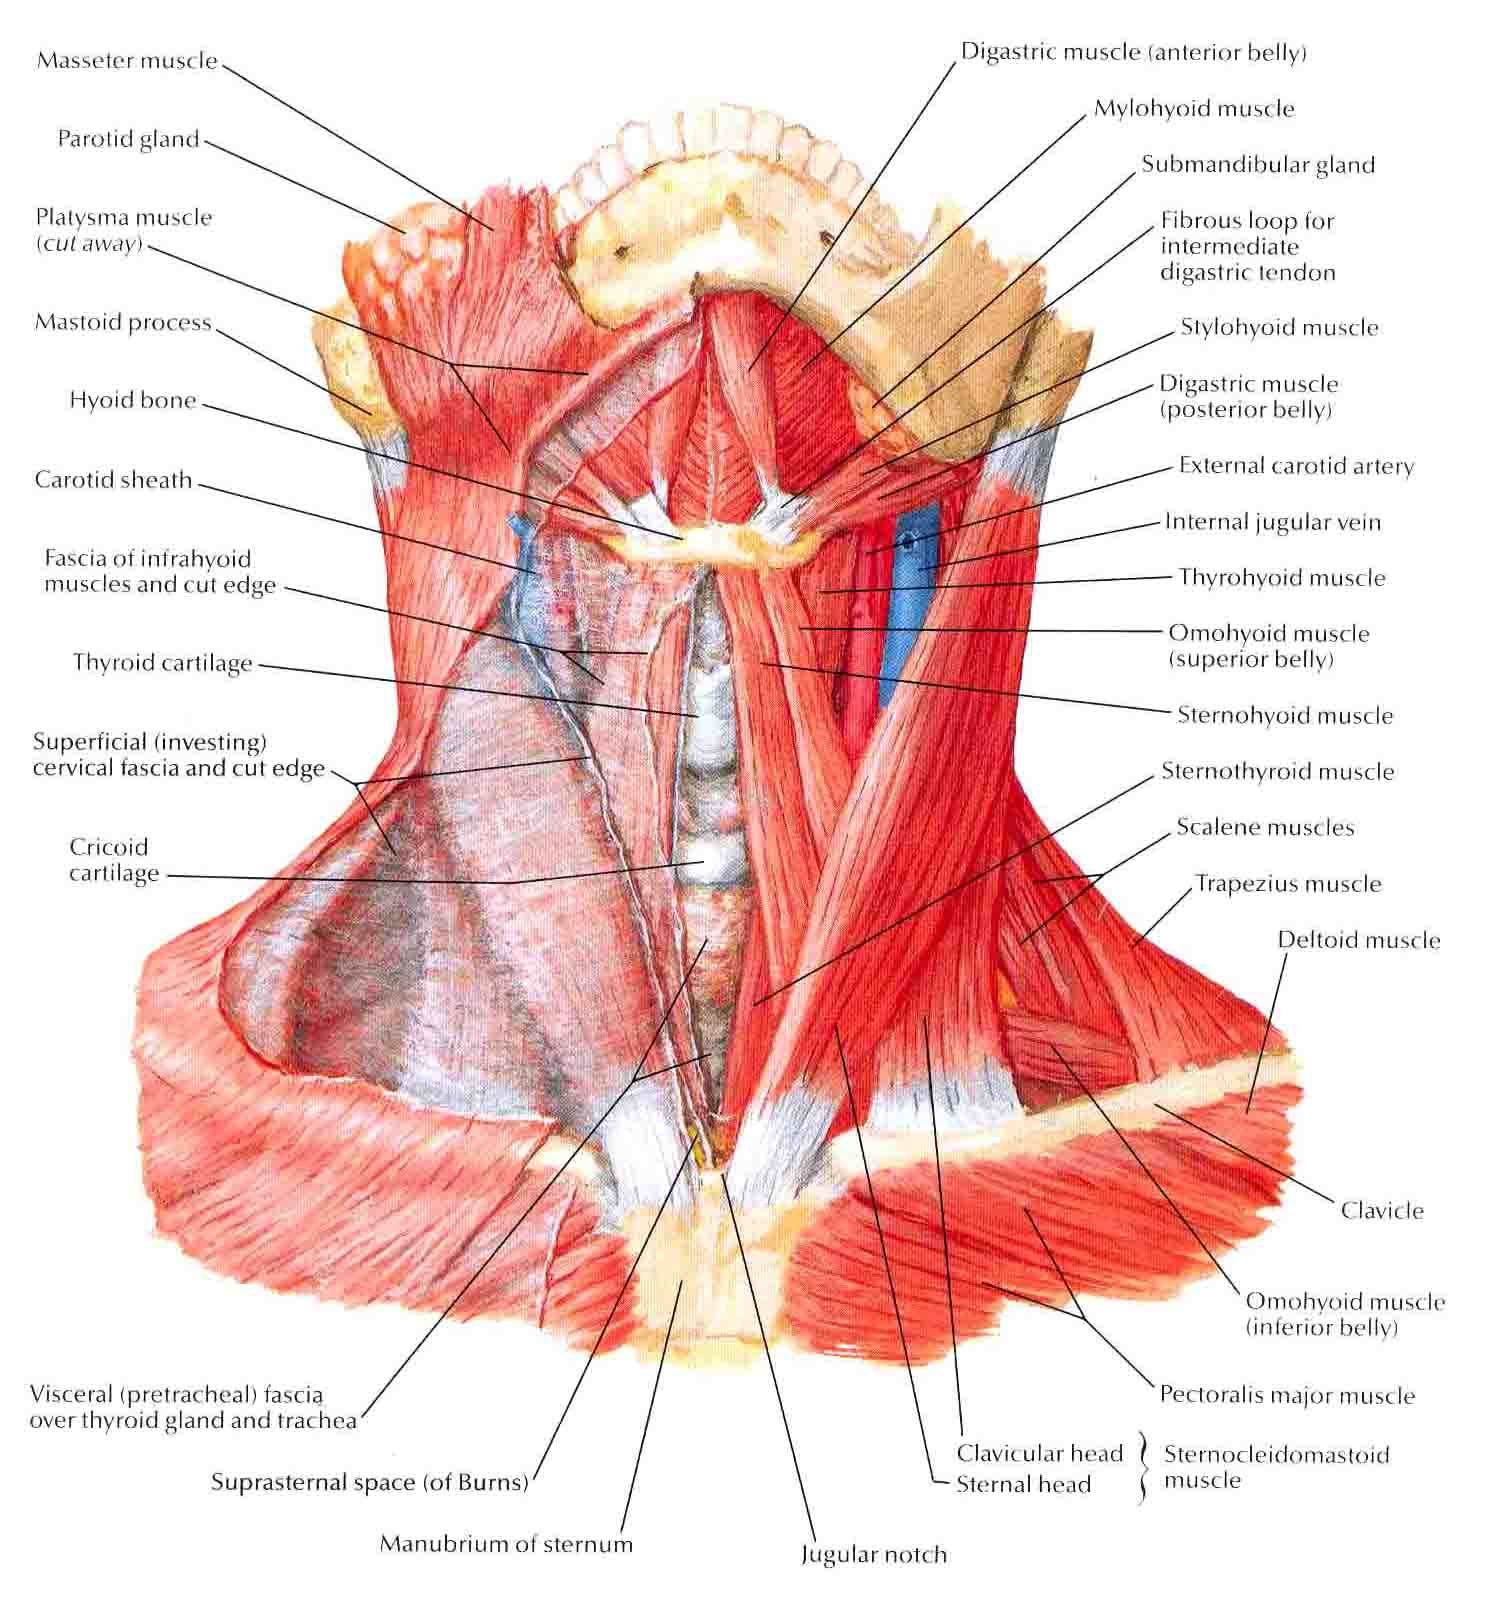 Muscles of Neck-Anterior View | Pinterest | Muscles, Anatomy and ...